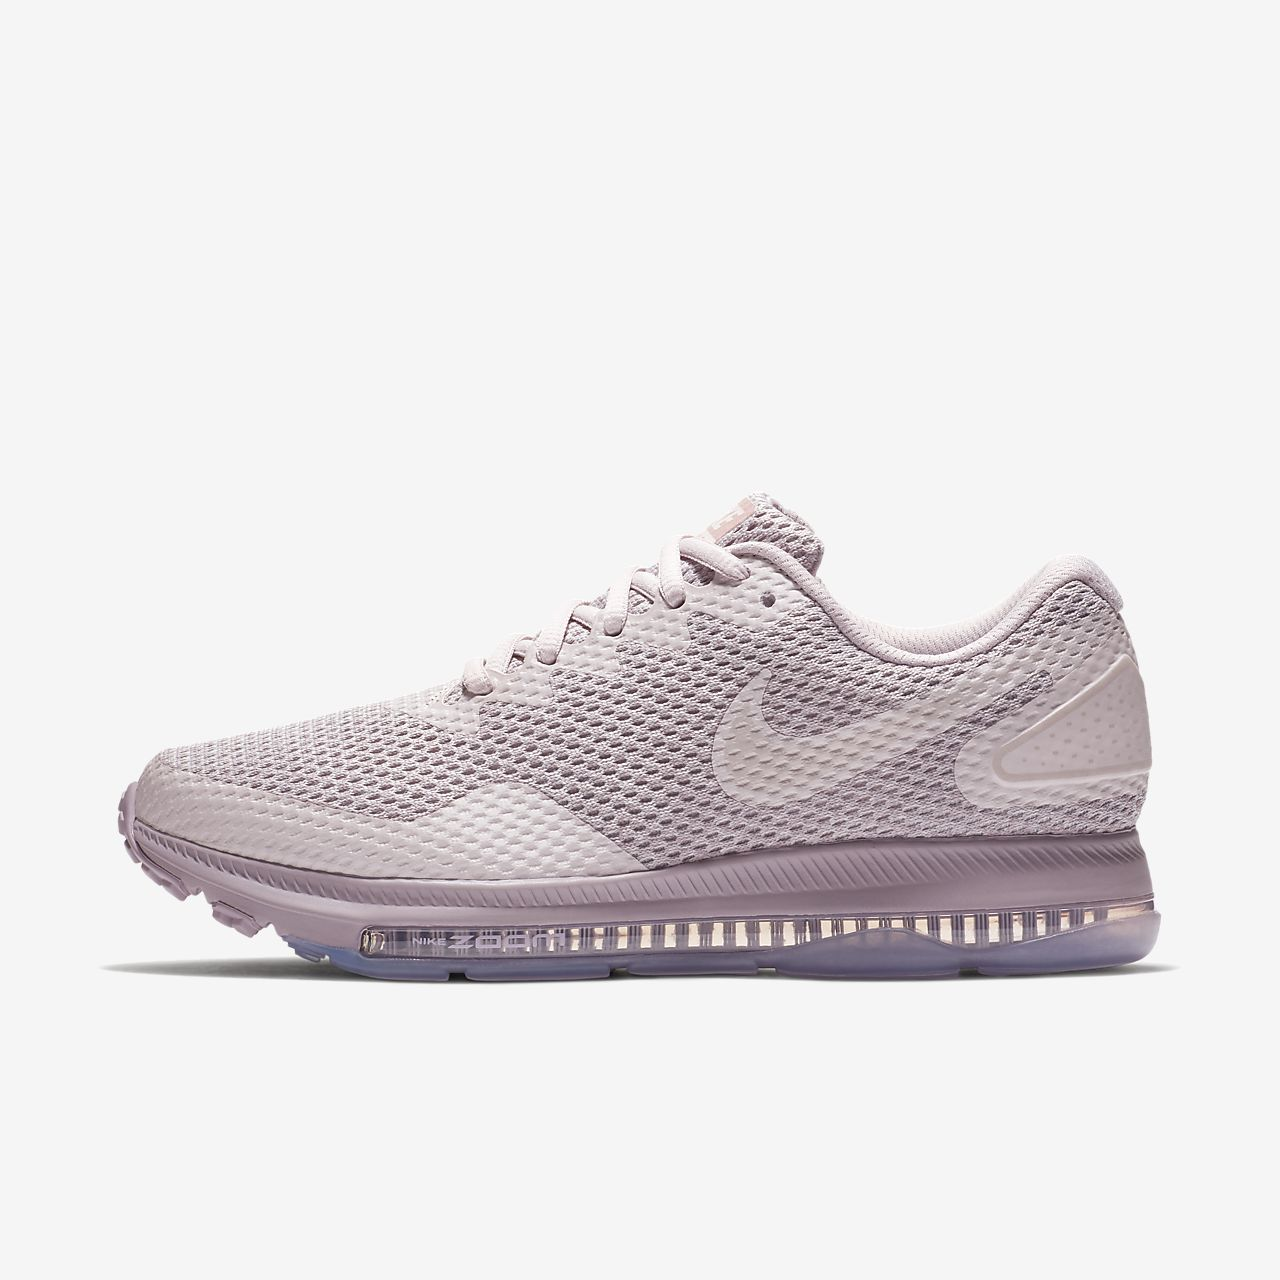 Chaussure de running Nike Zoom All Out Low 2 pour Femme